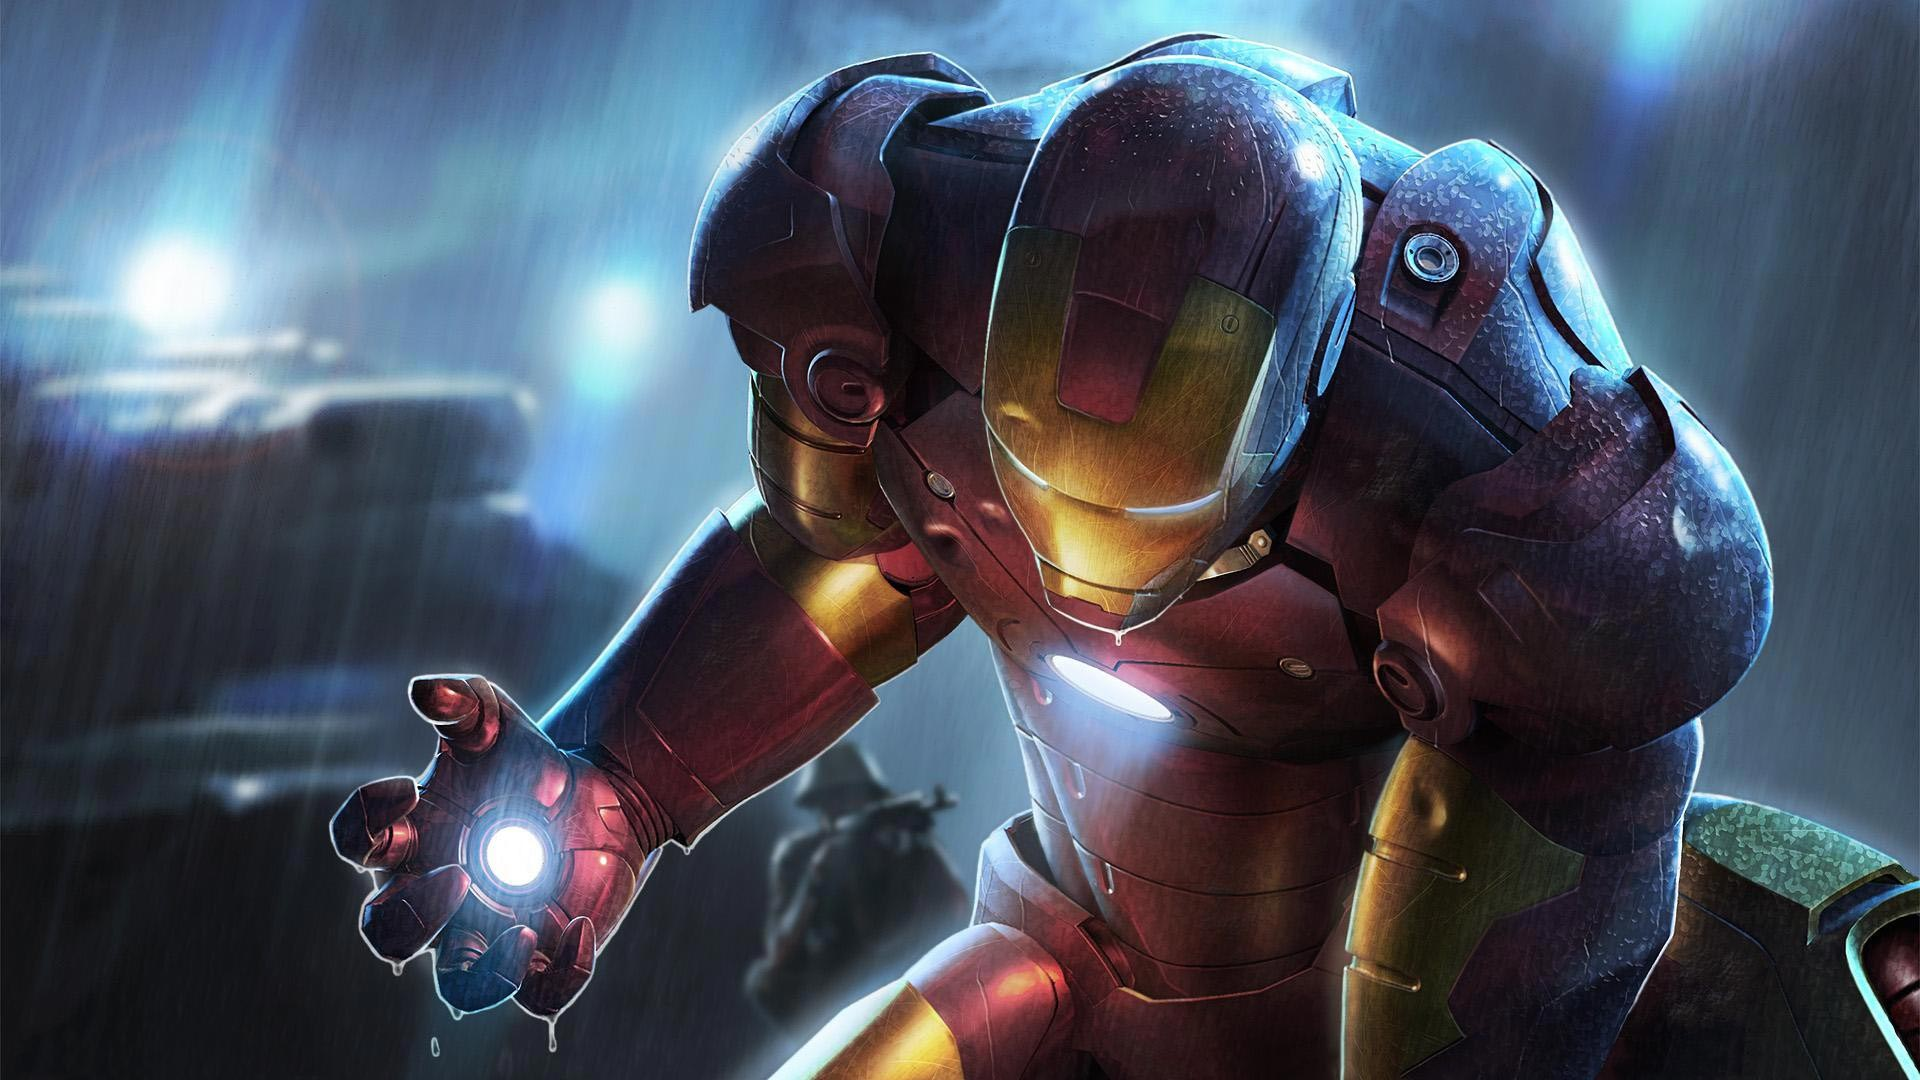 Ironman song download casino hits bigroom song online only on.